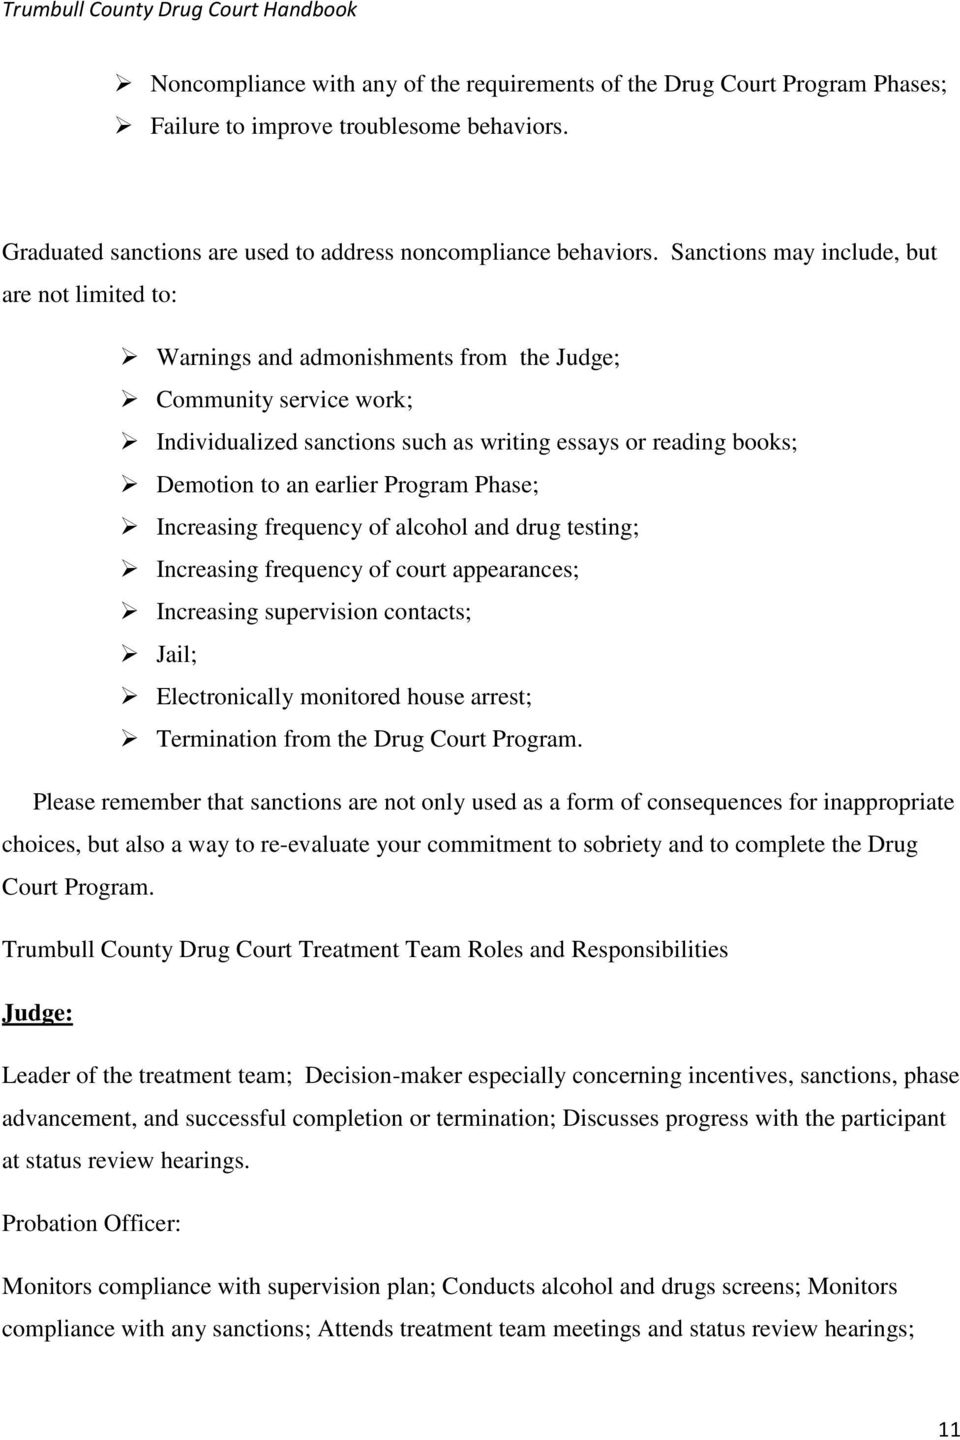 what makes a person eligible for the drug court program what